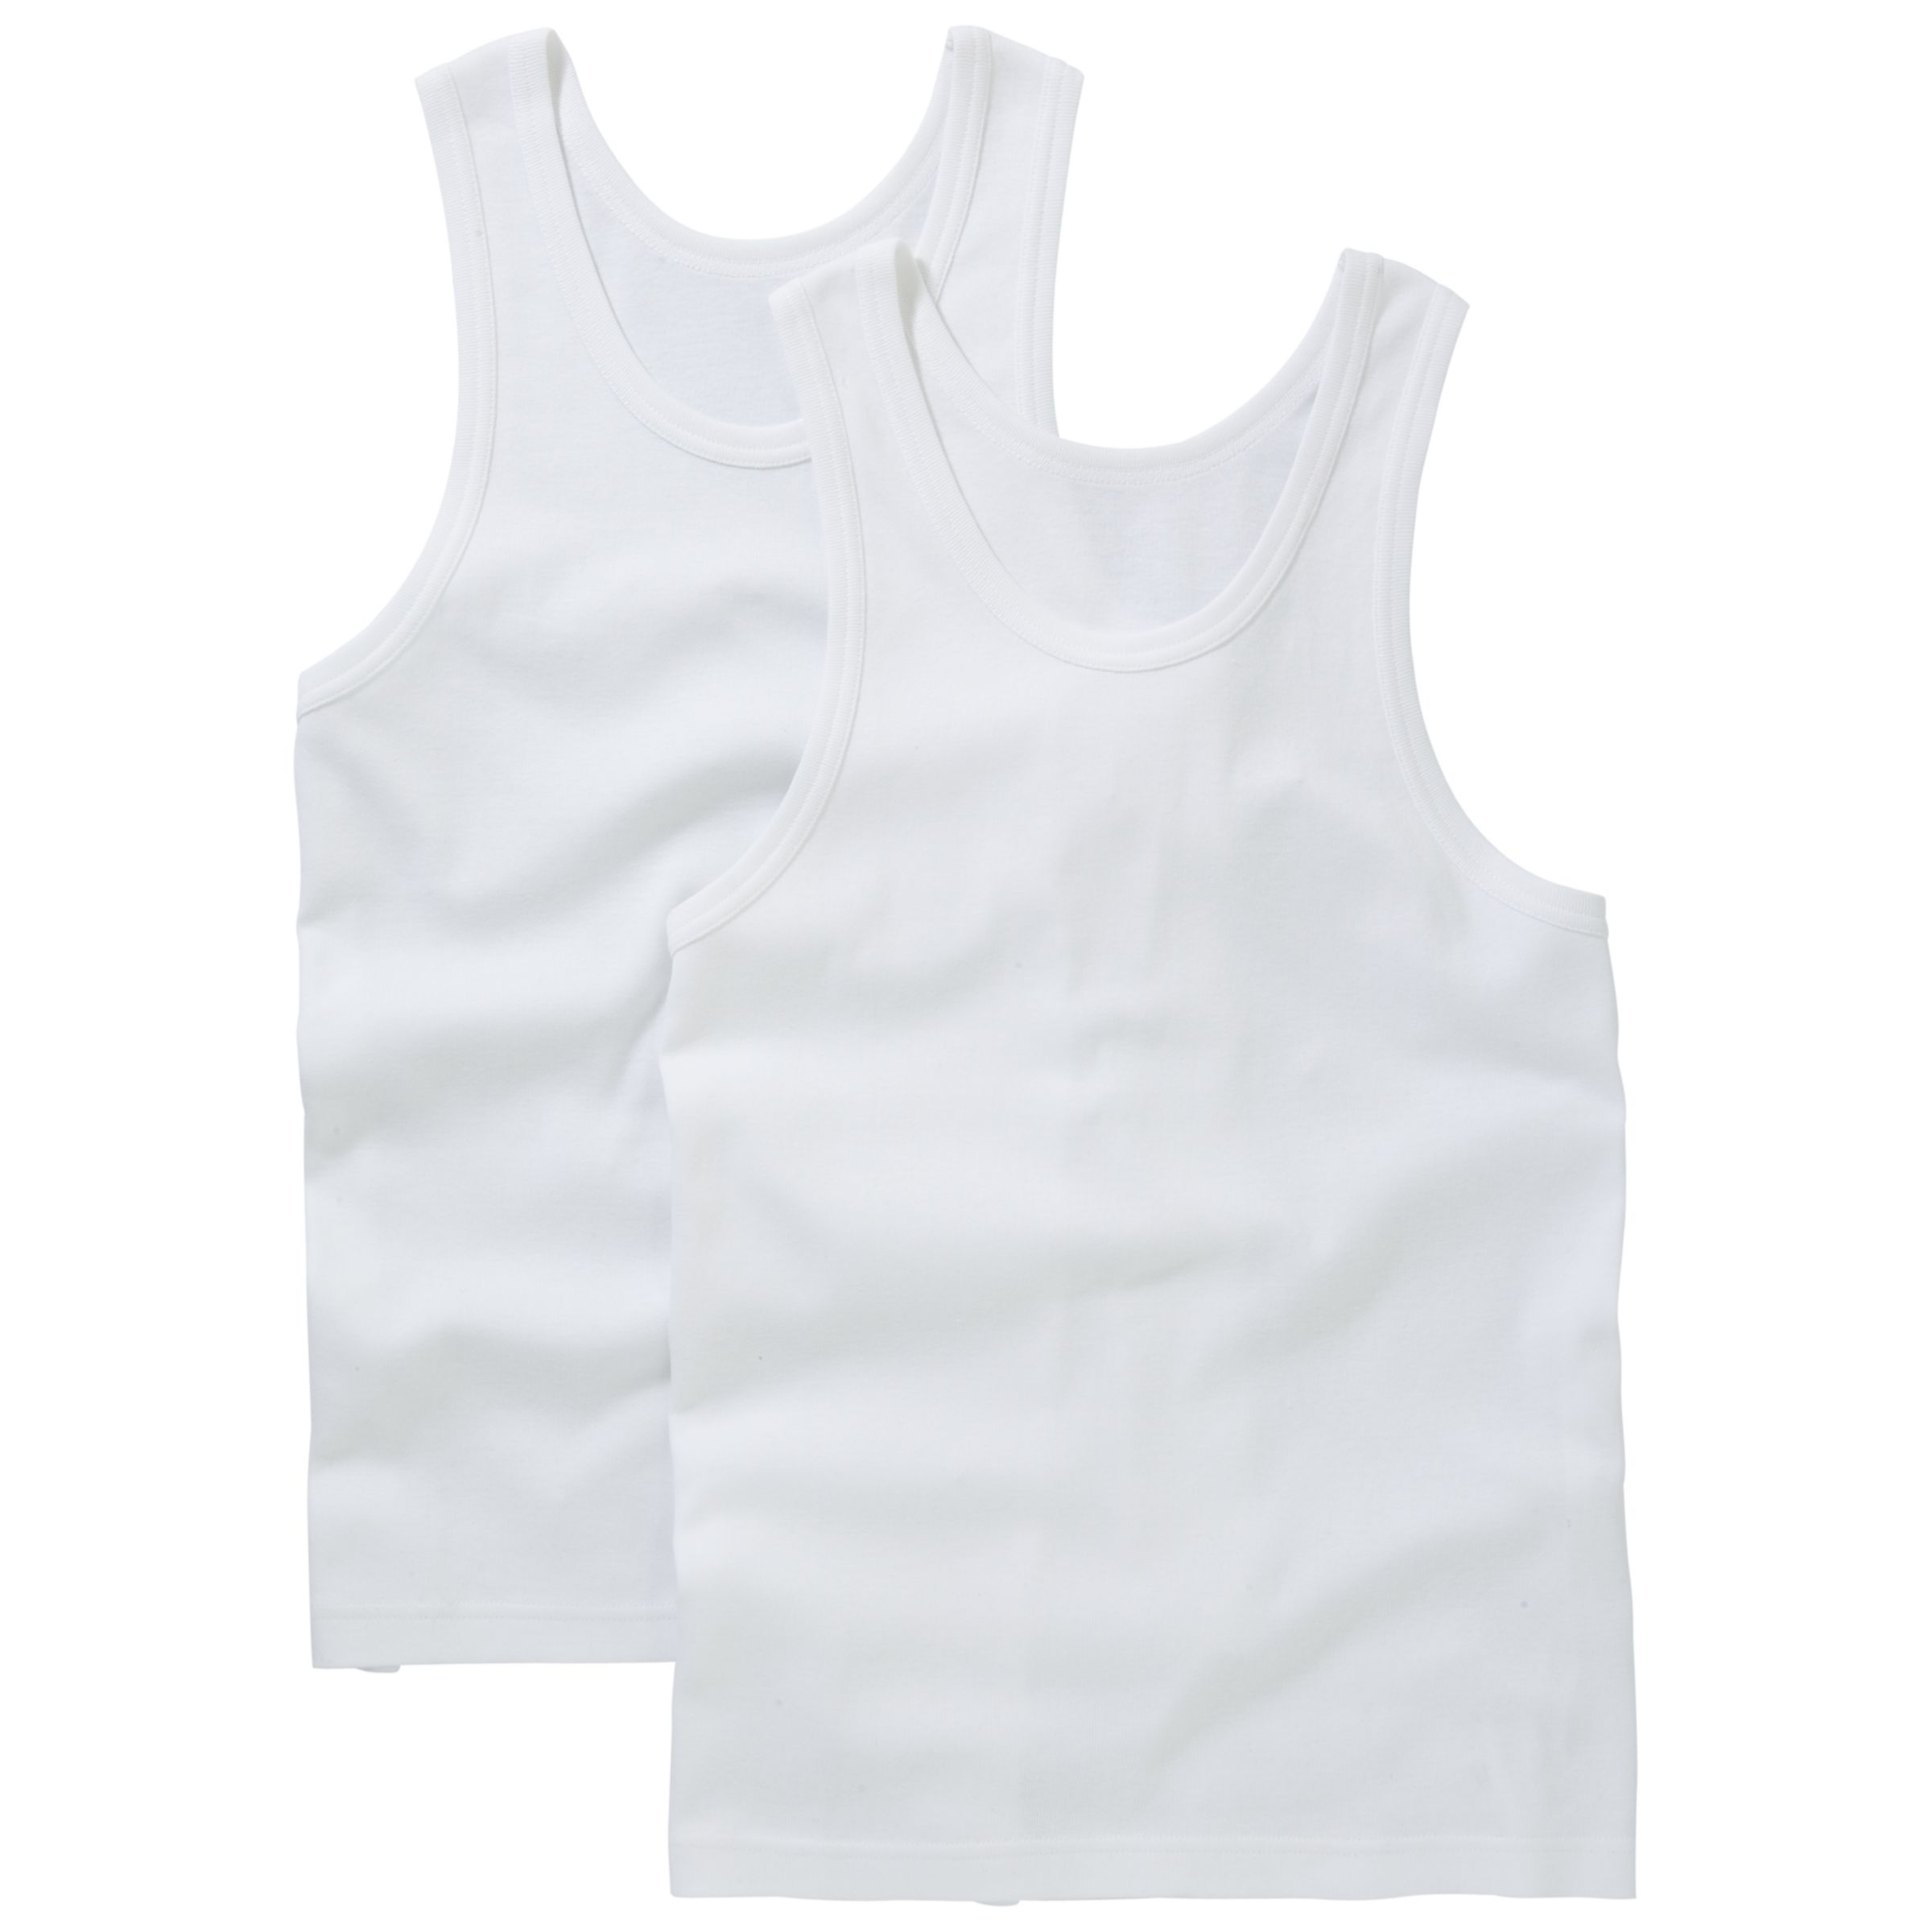 John Lewis Organic Cotton SInglet Vests, Pack of 2, White